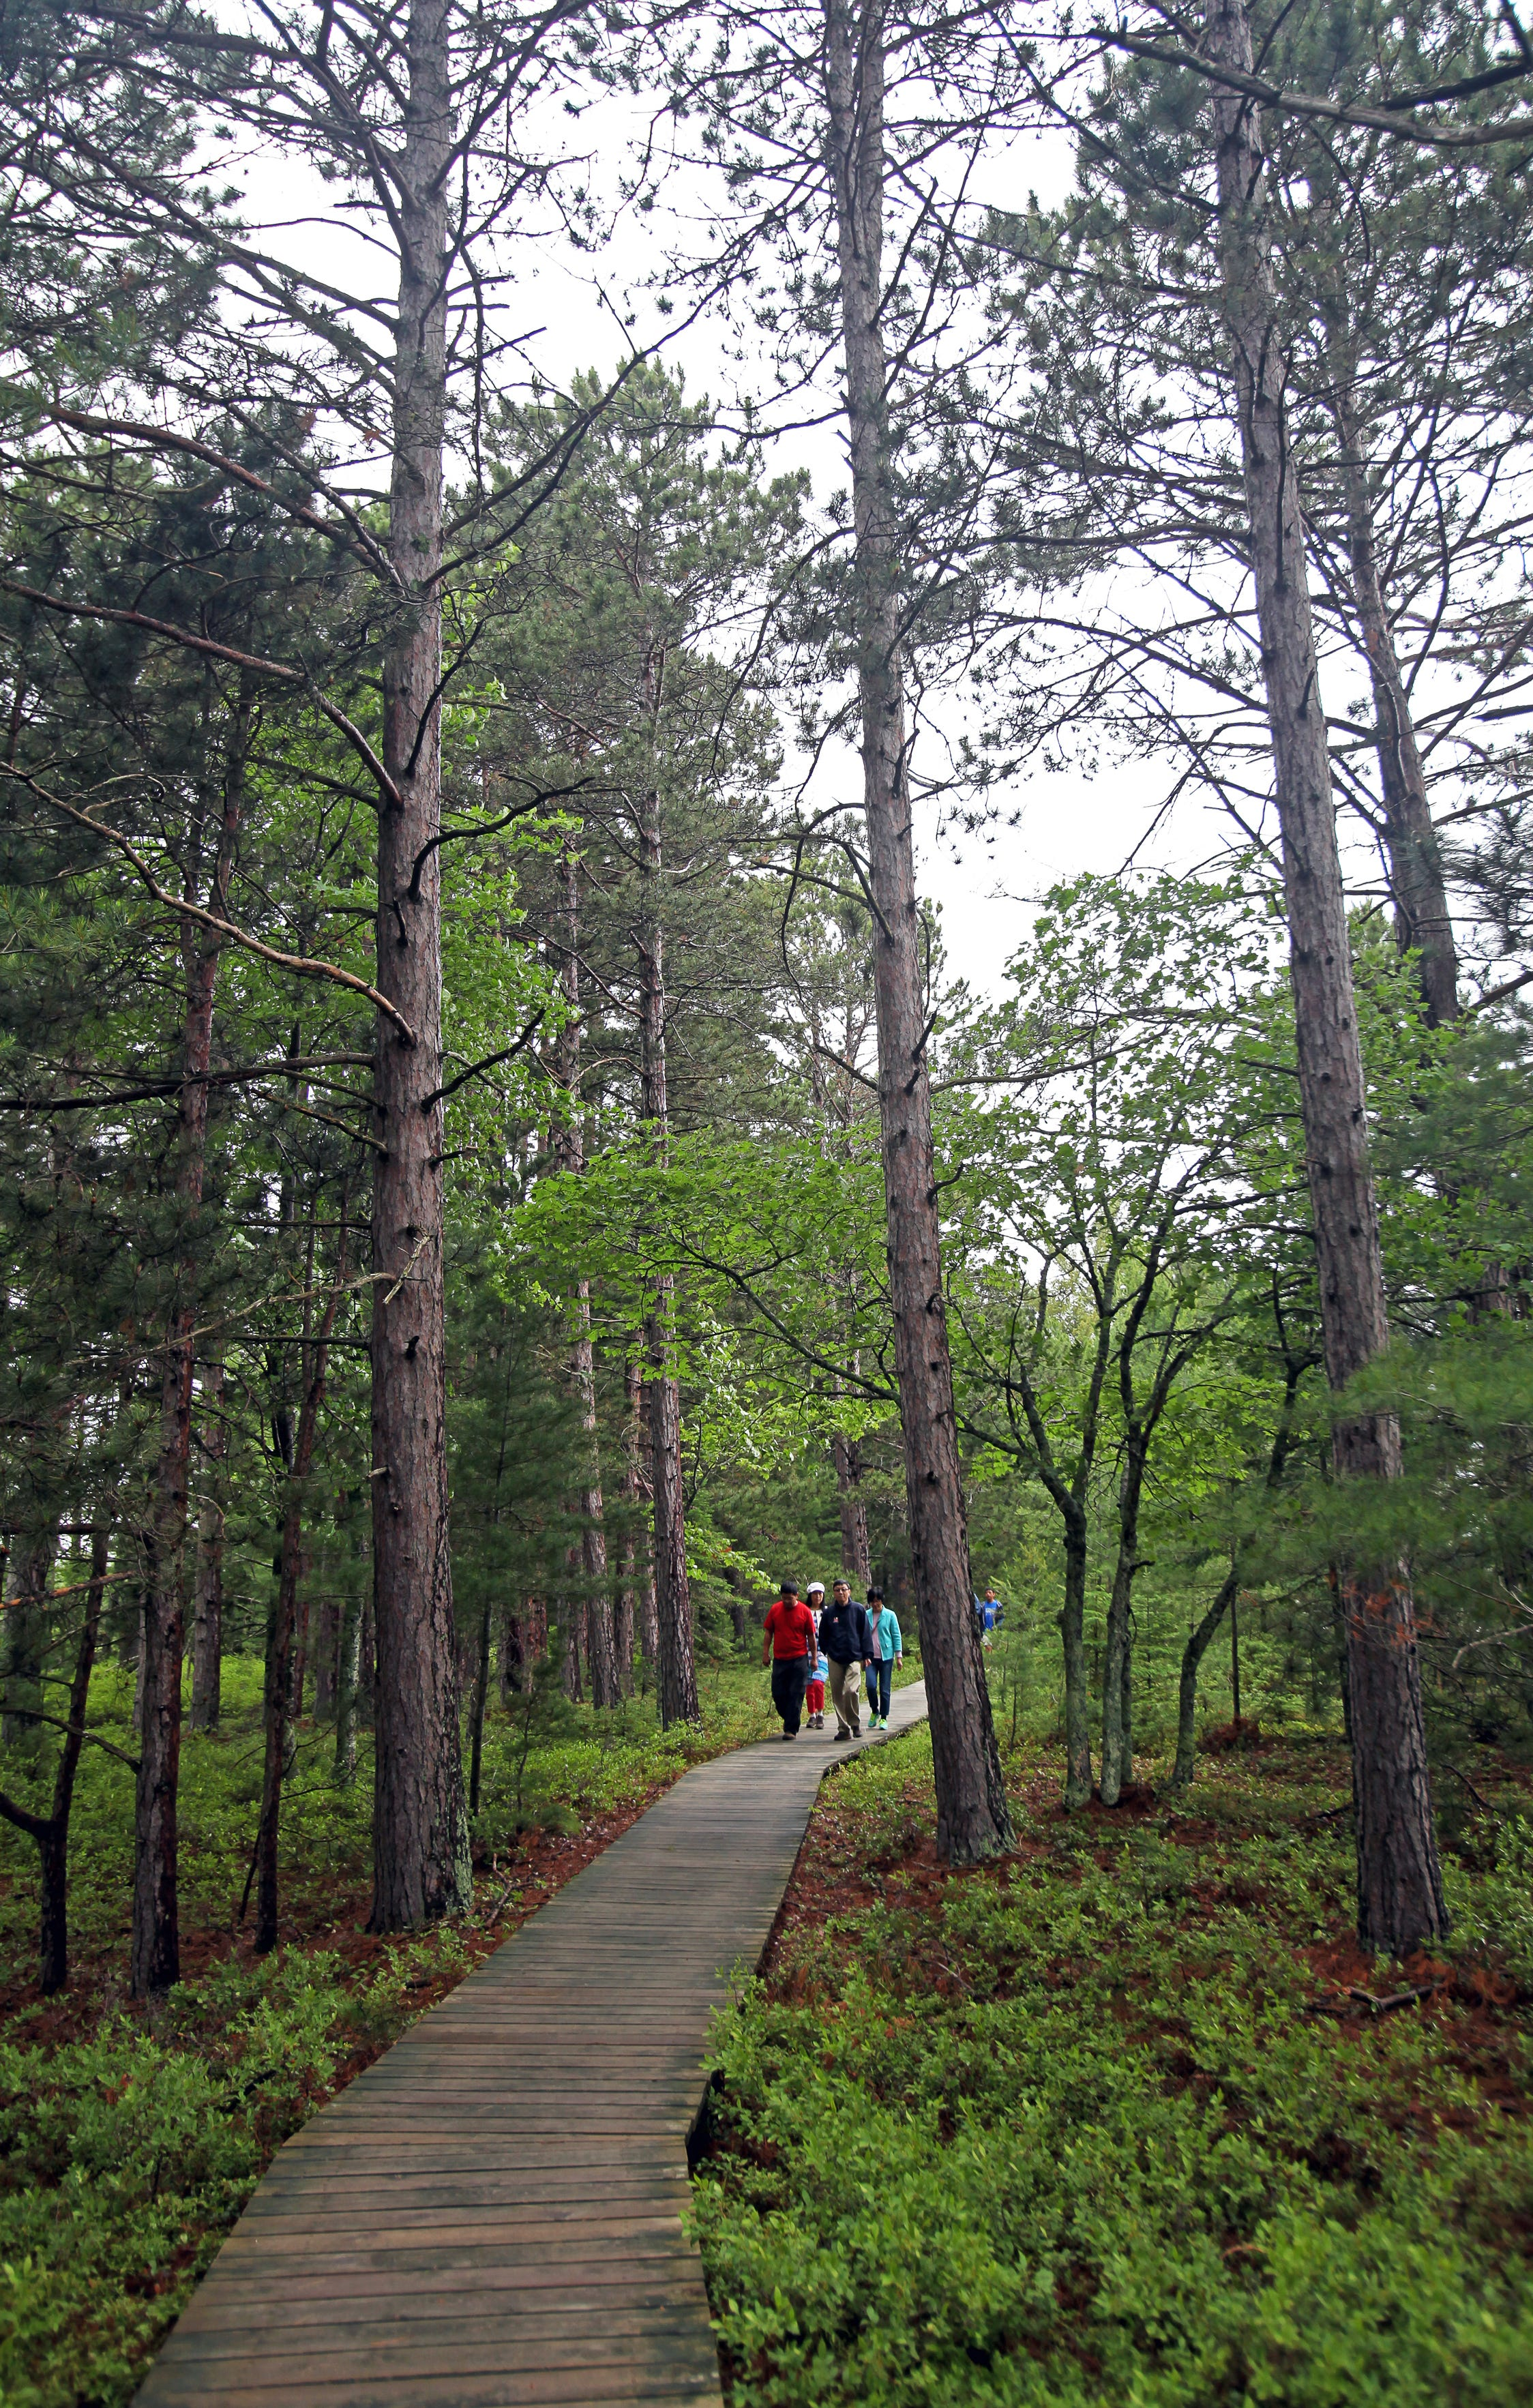 The Boardwalk Trail travels through forest and bog landscapes along Lake Superior at Big Bay State Park on Madeline Island.